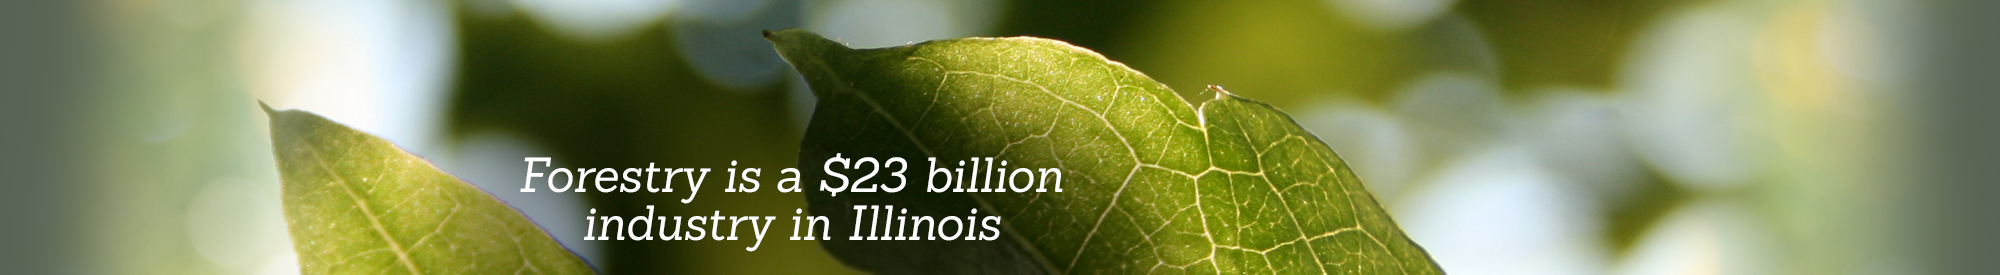 Forestry is a $23 billion industry in Illinois